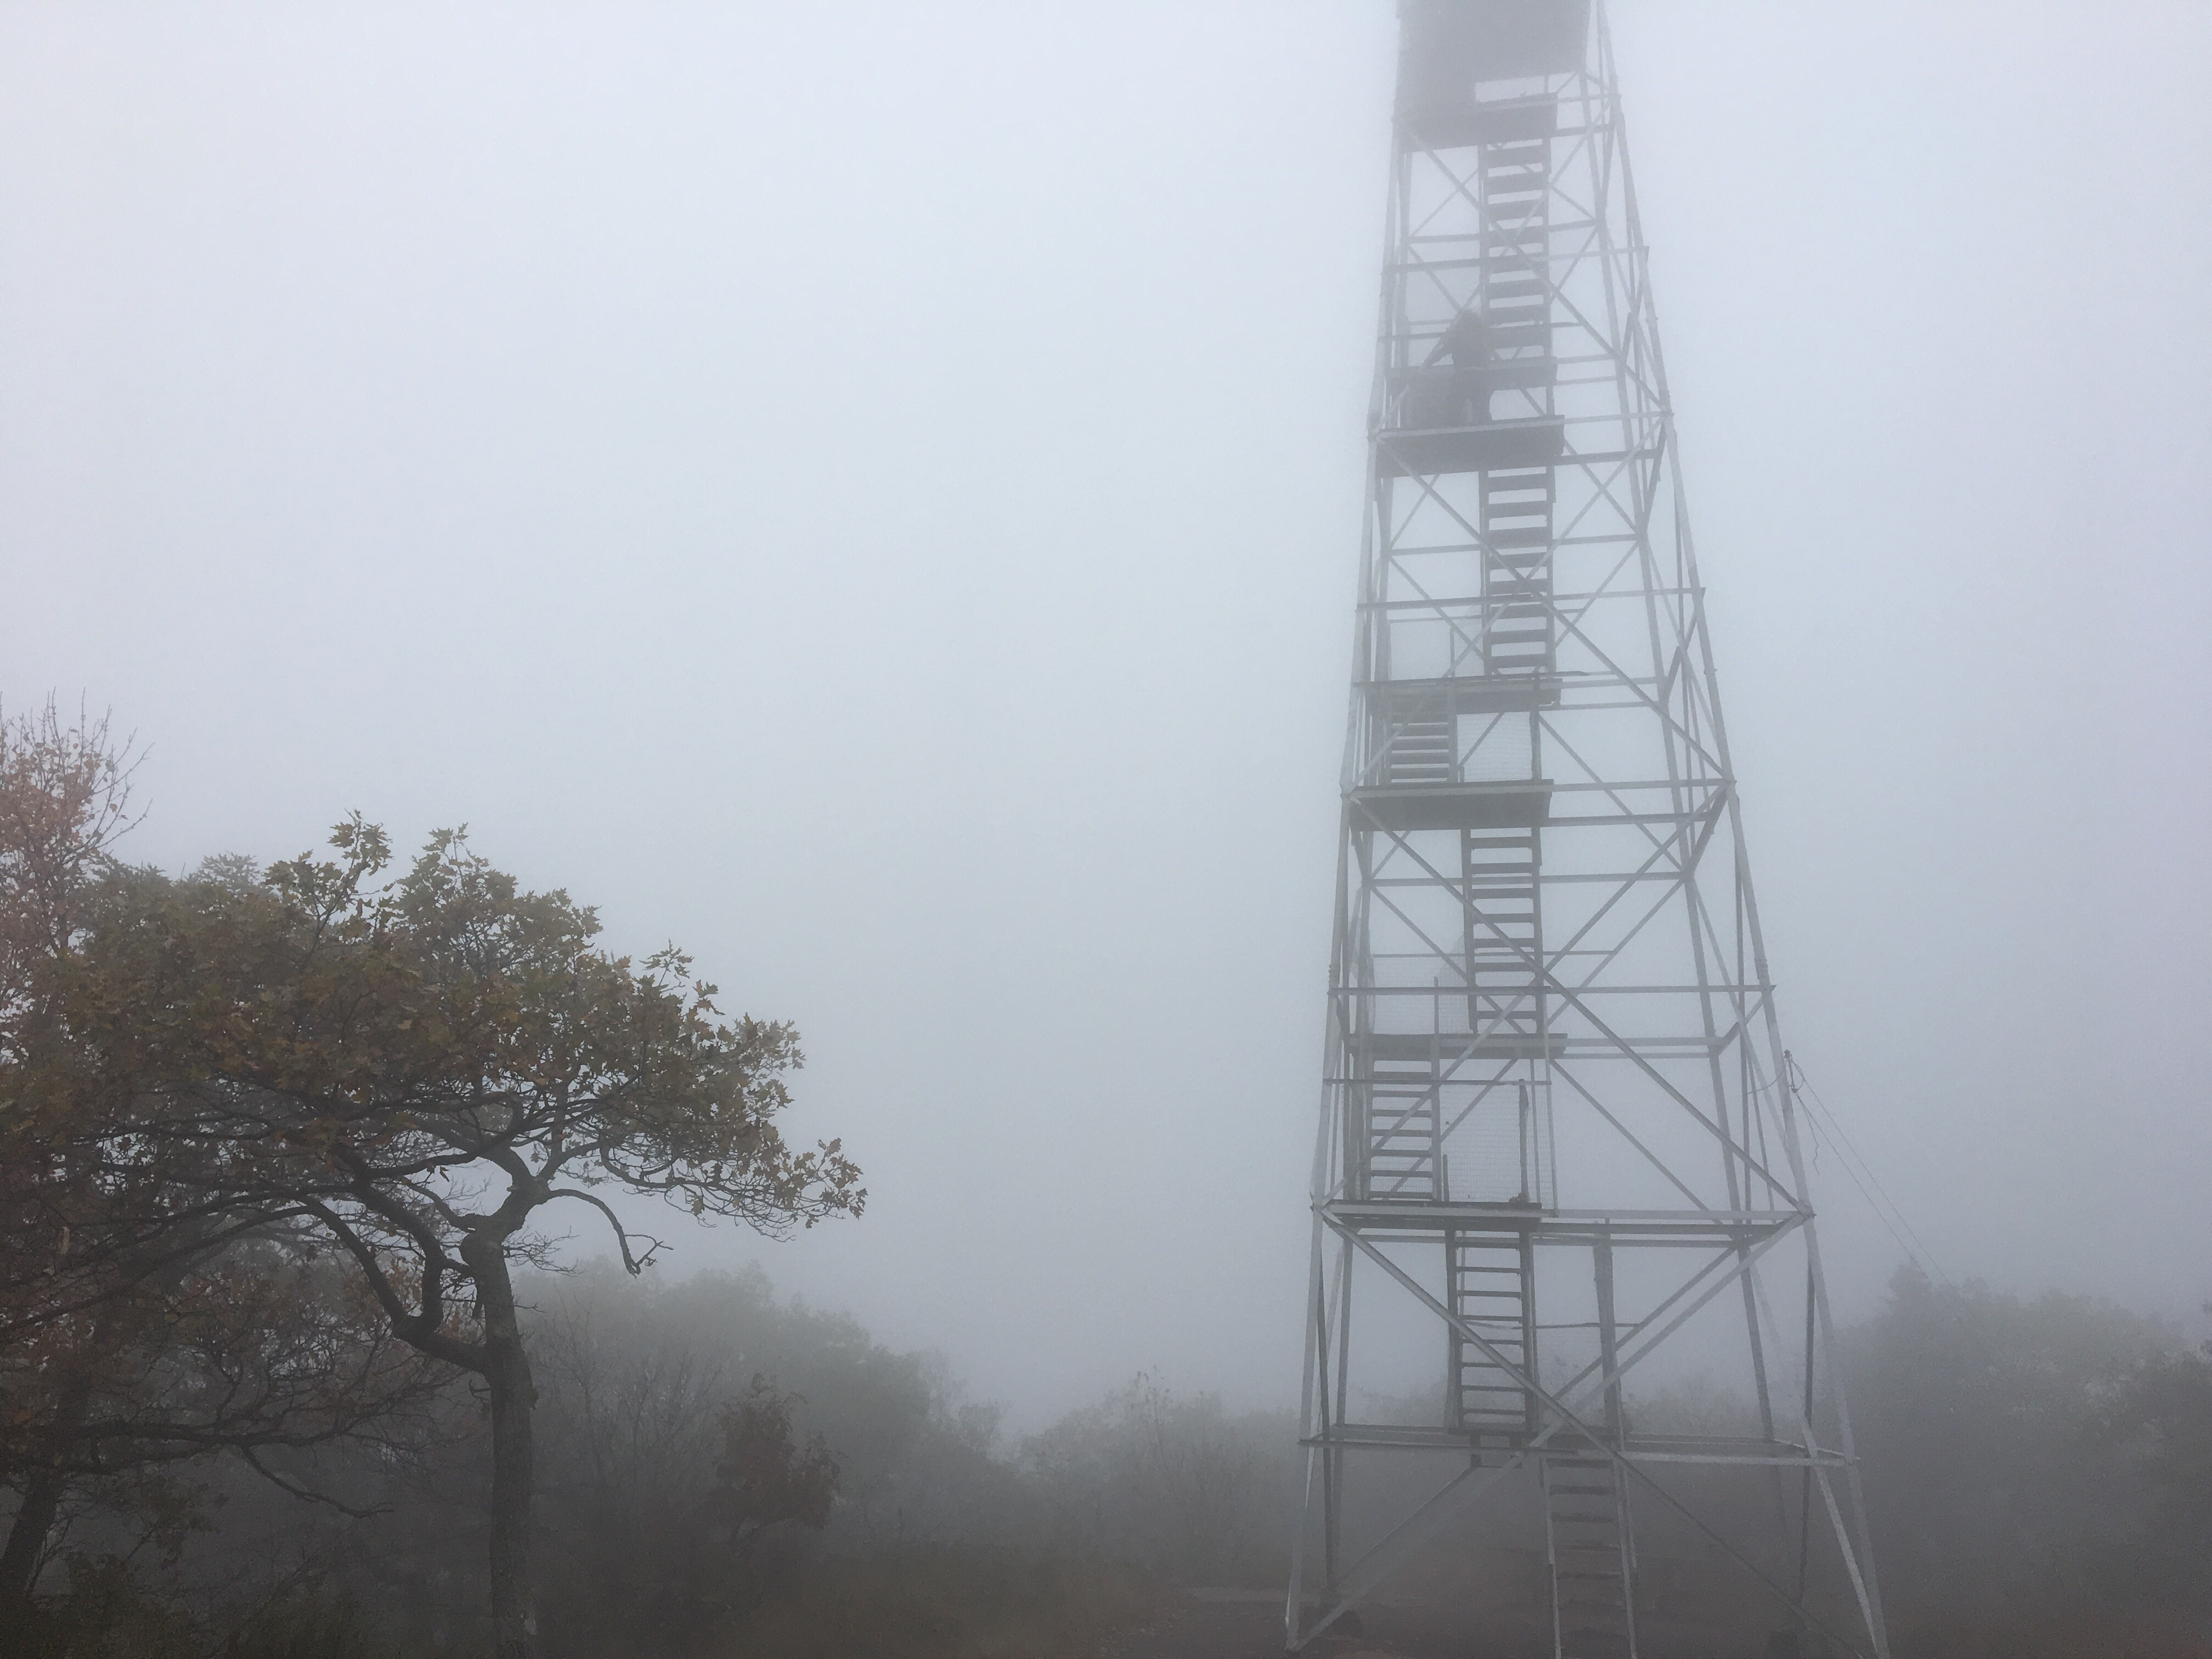 Overlook Tower hike; fire tower, Catskills, NY